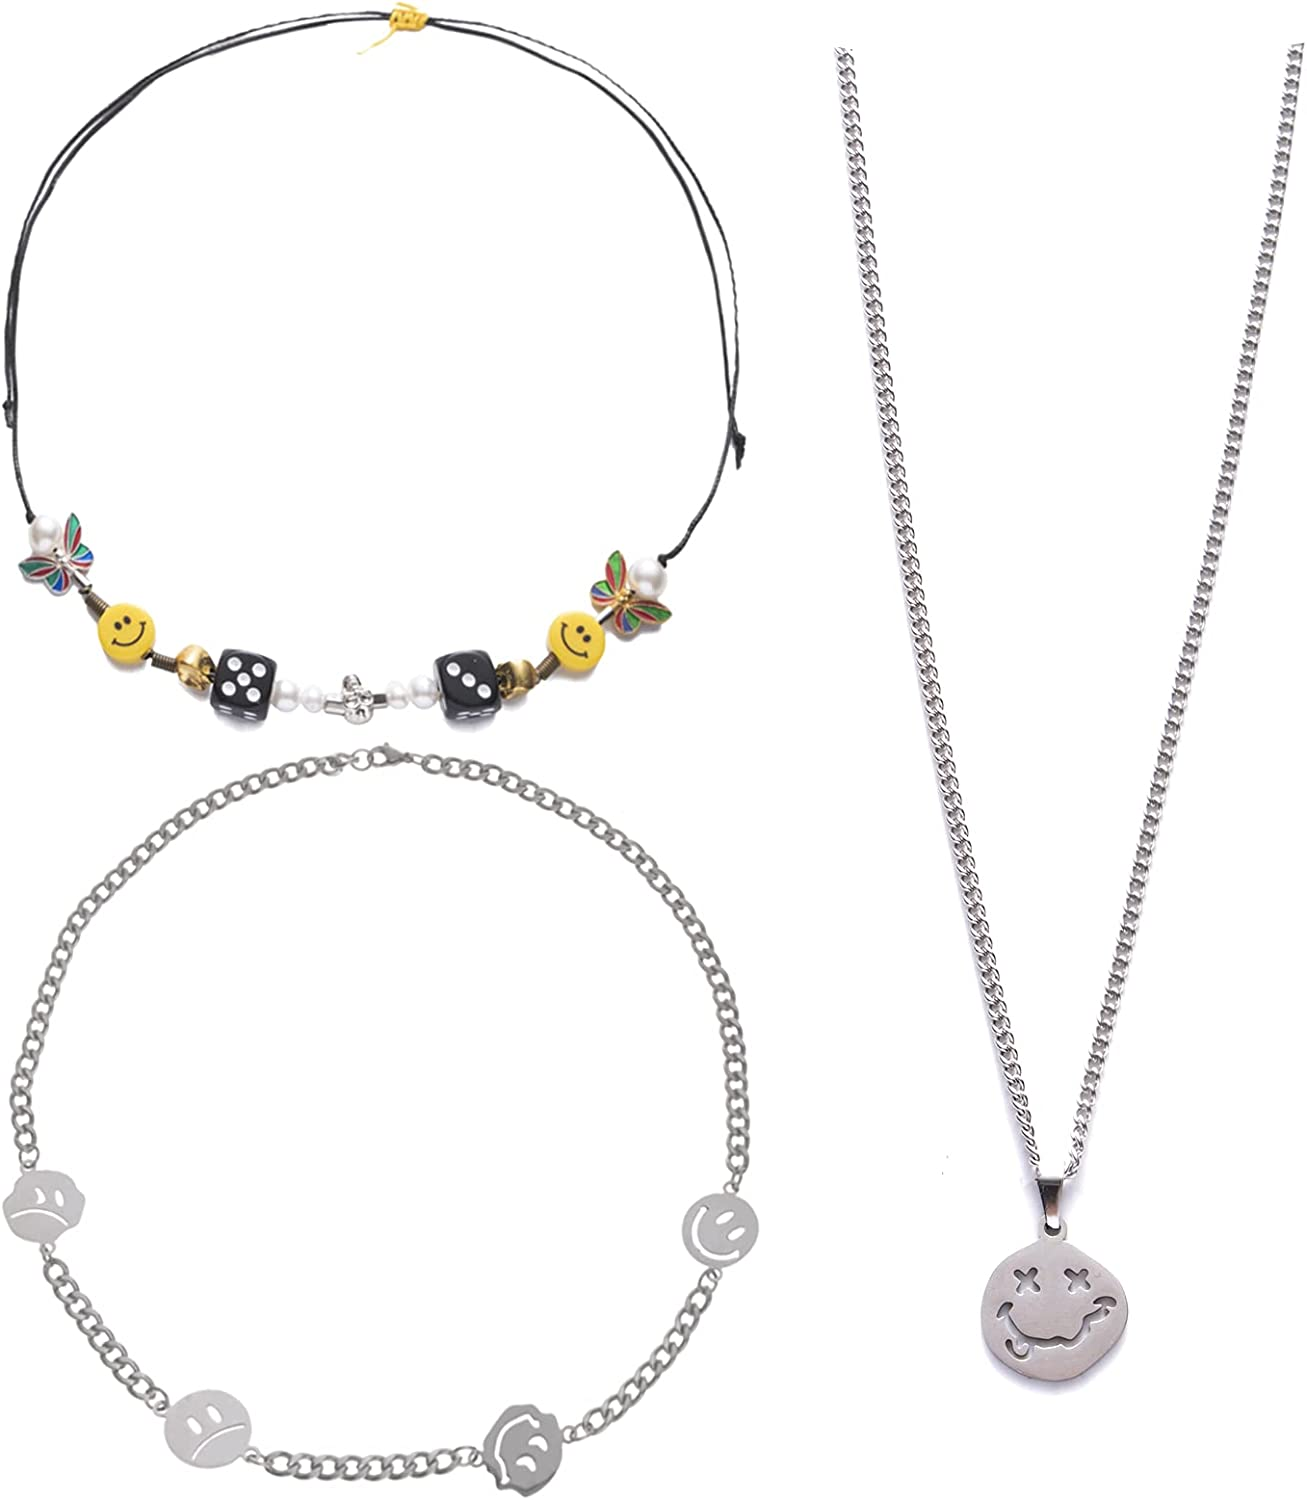 JEWPARK 3 PCS Smiley Face Necklaces for Men Women ASAP Rocky Necklace Set Dice Skull Pearl Butterfly Necklace Punk Irregular Funny Smile Necklaces Goth Hip Hop Street Dance Jewelry